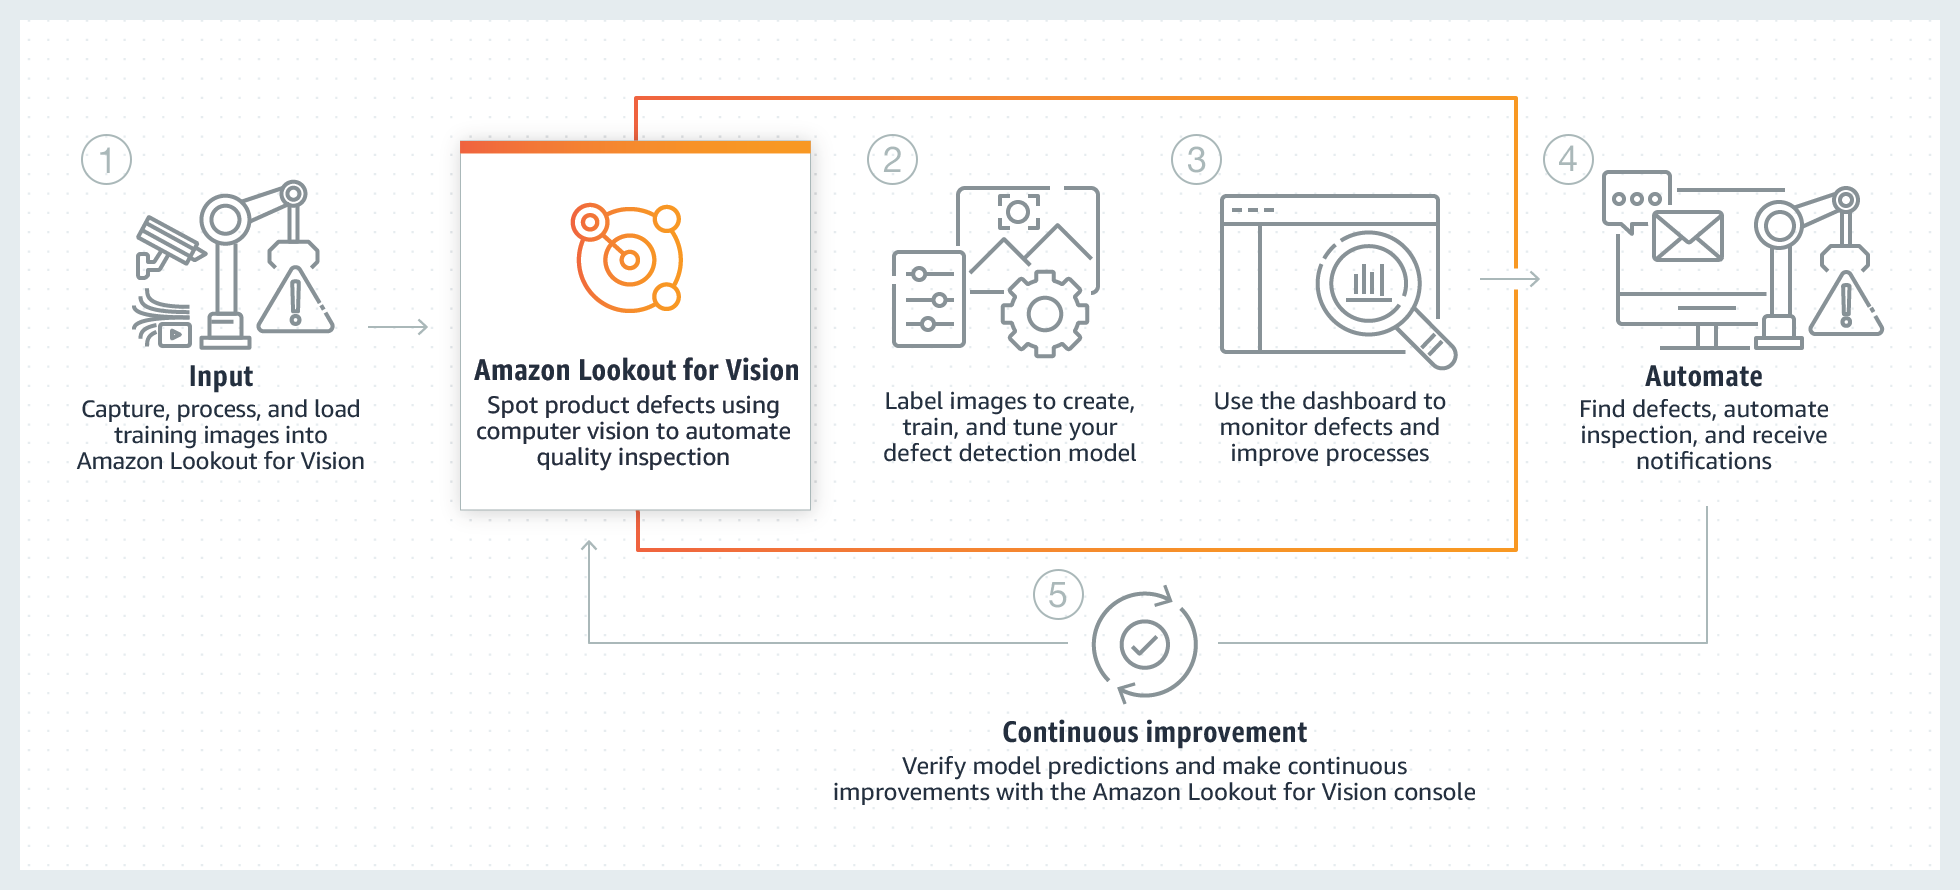 Amazon Lookout for Vision - How it works